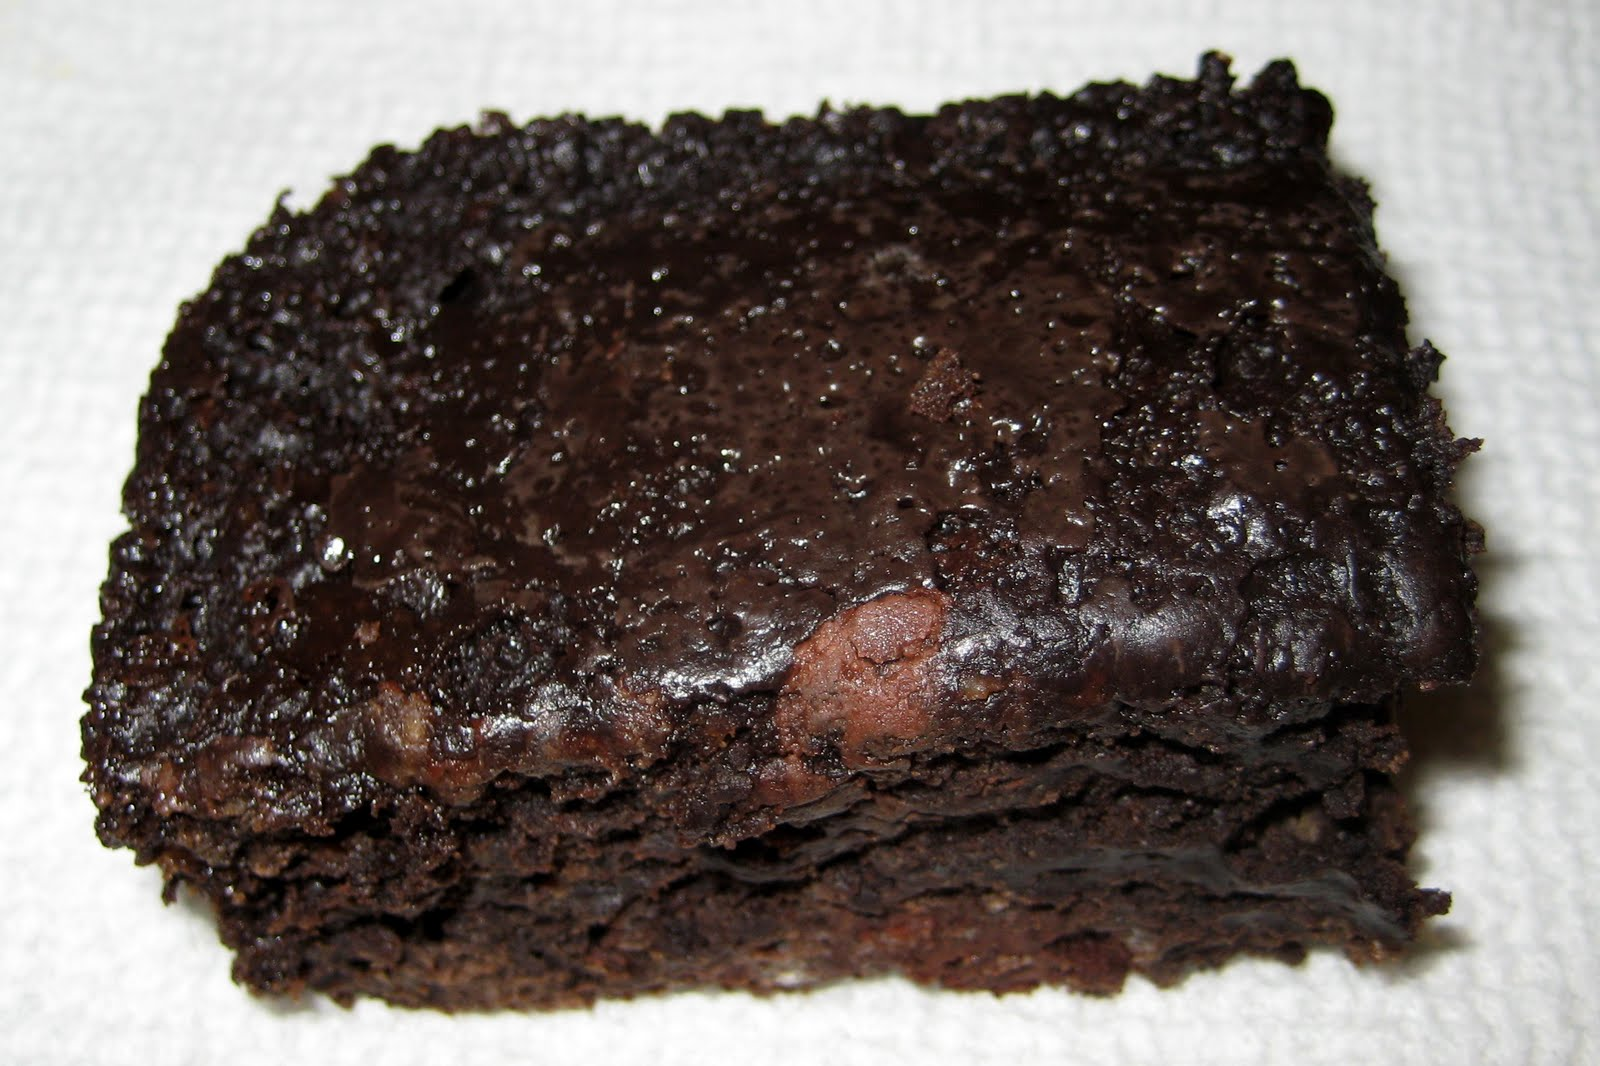 ... Century Urban Pioneers: Chocolate, Oatmeal, and Guinness Stout Cake